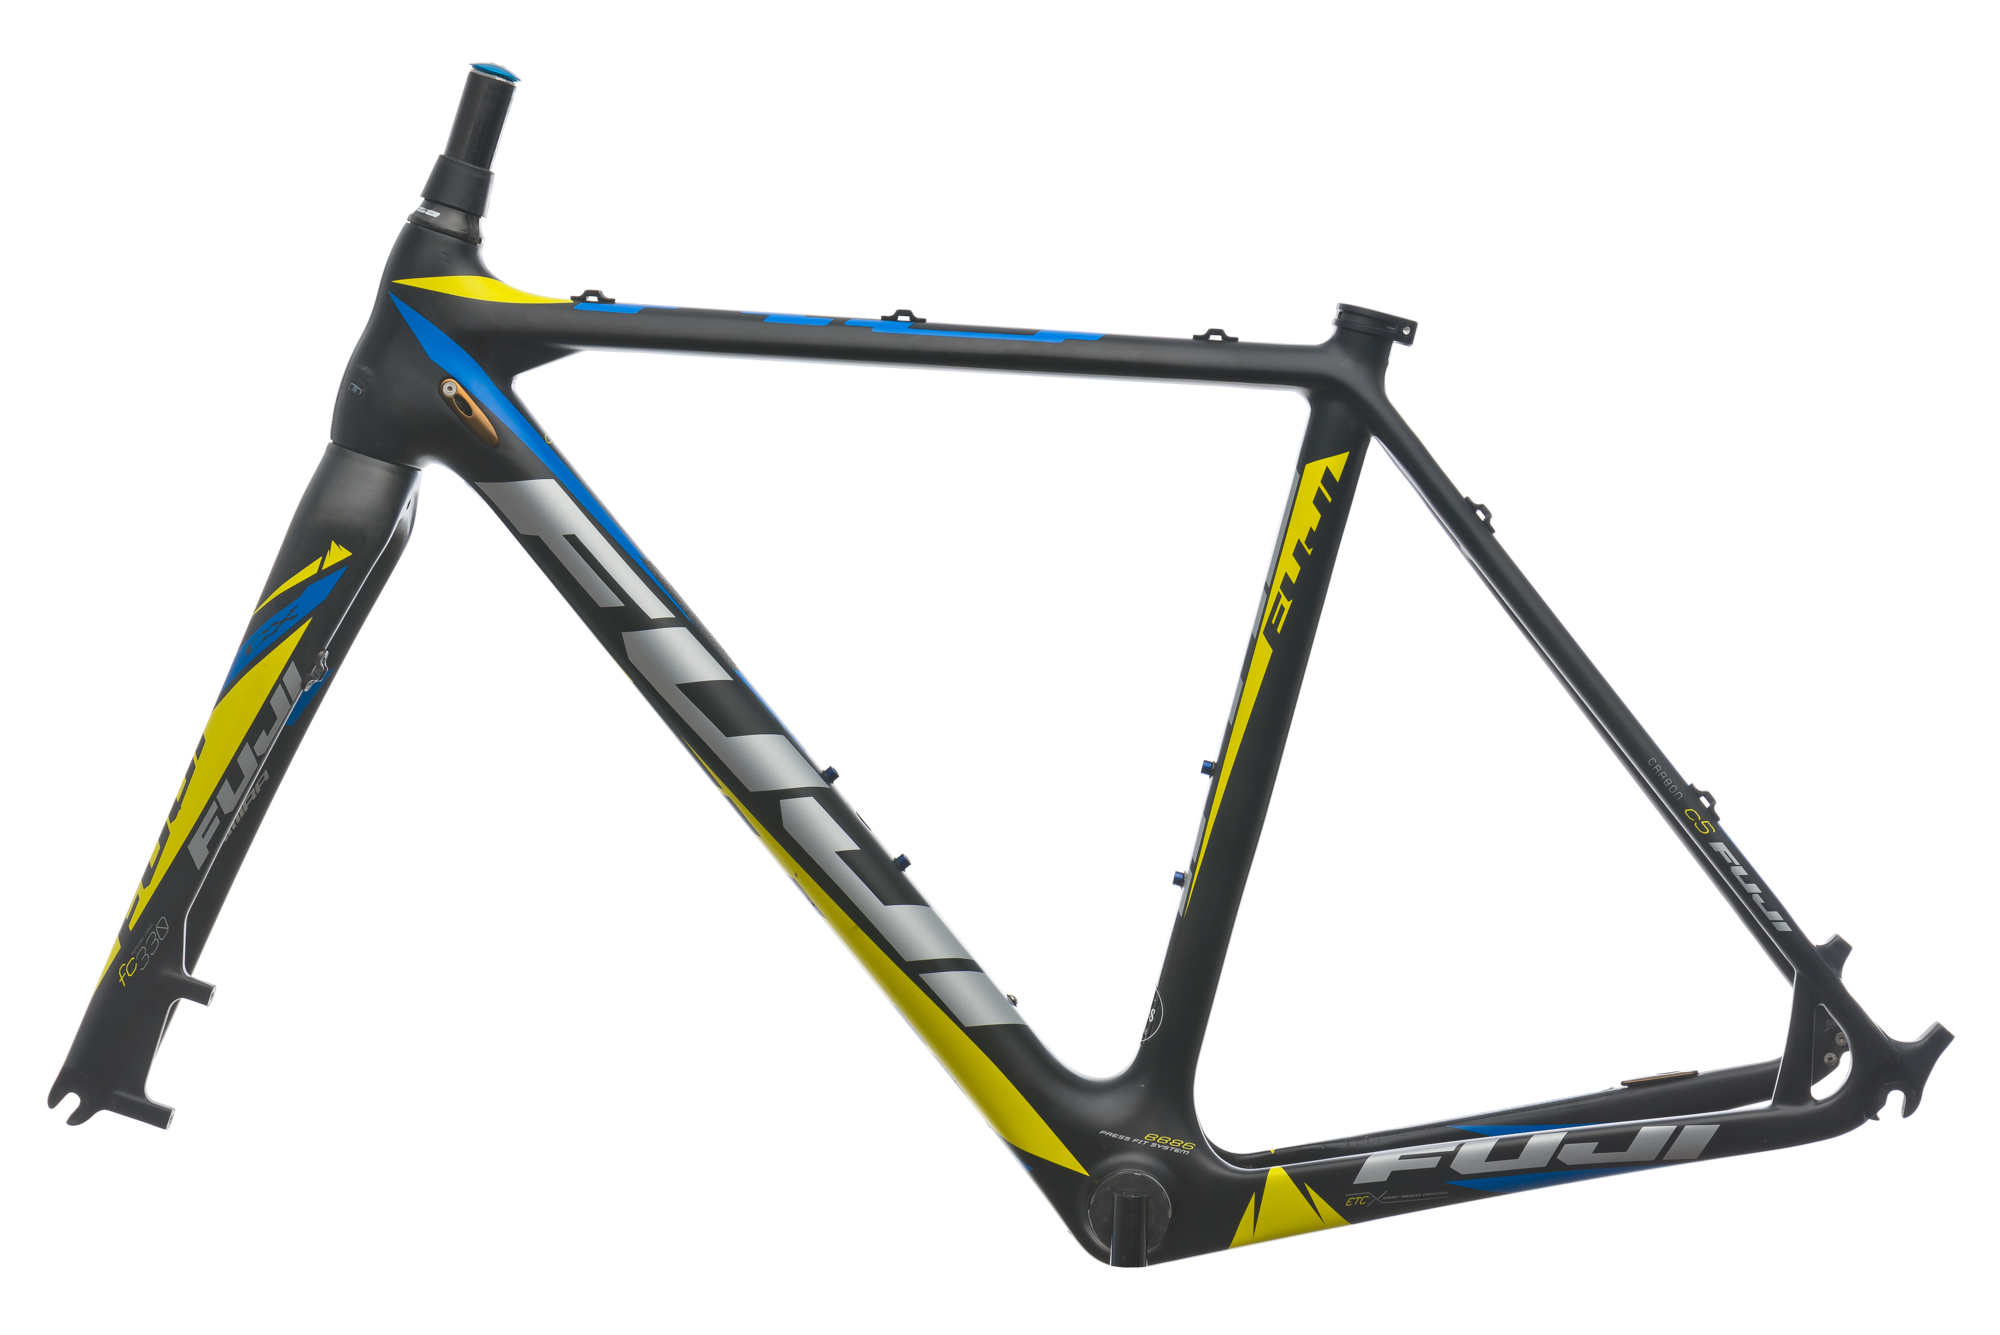 2013 Fuji Altamira CX 1.3 Cyclocross Bike Frame 52cm S/M Carbon Disc ...